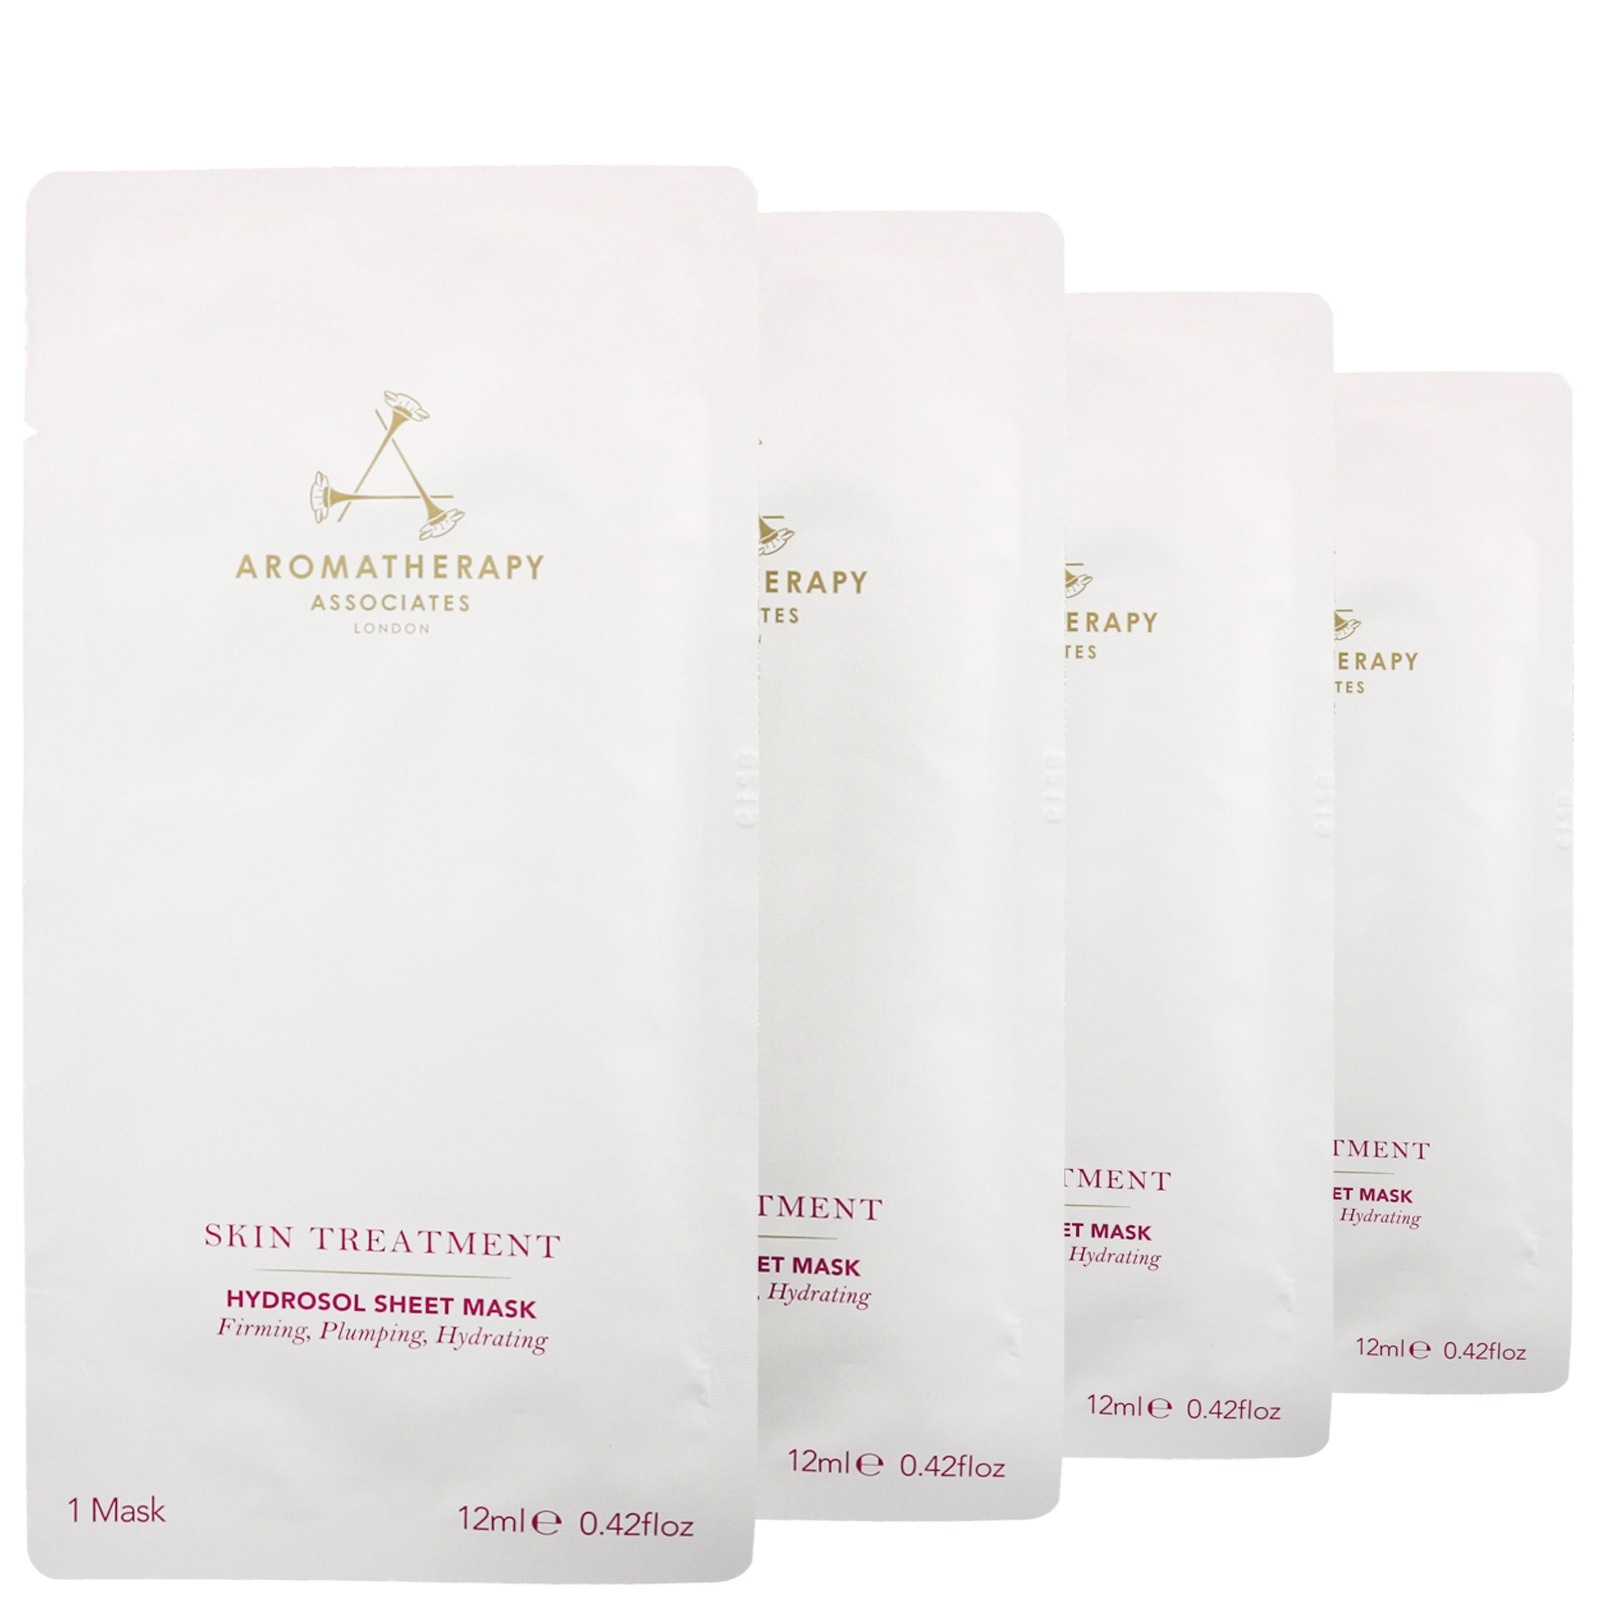 Aromatherapy Associates Sheet Mask Sachets (Hydrosol) Pack of 4